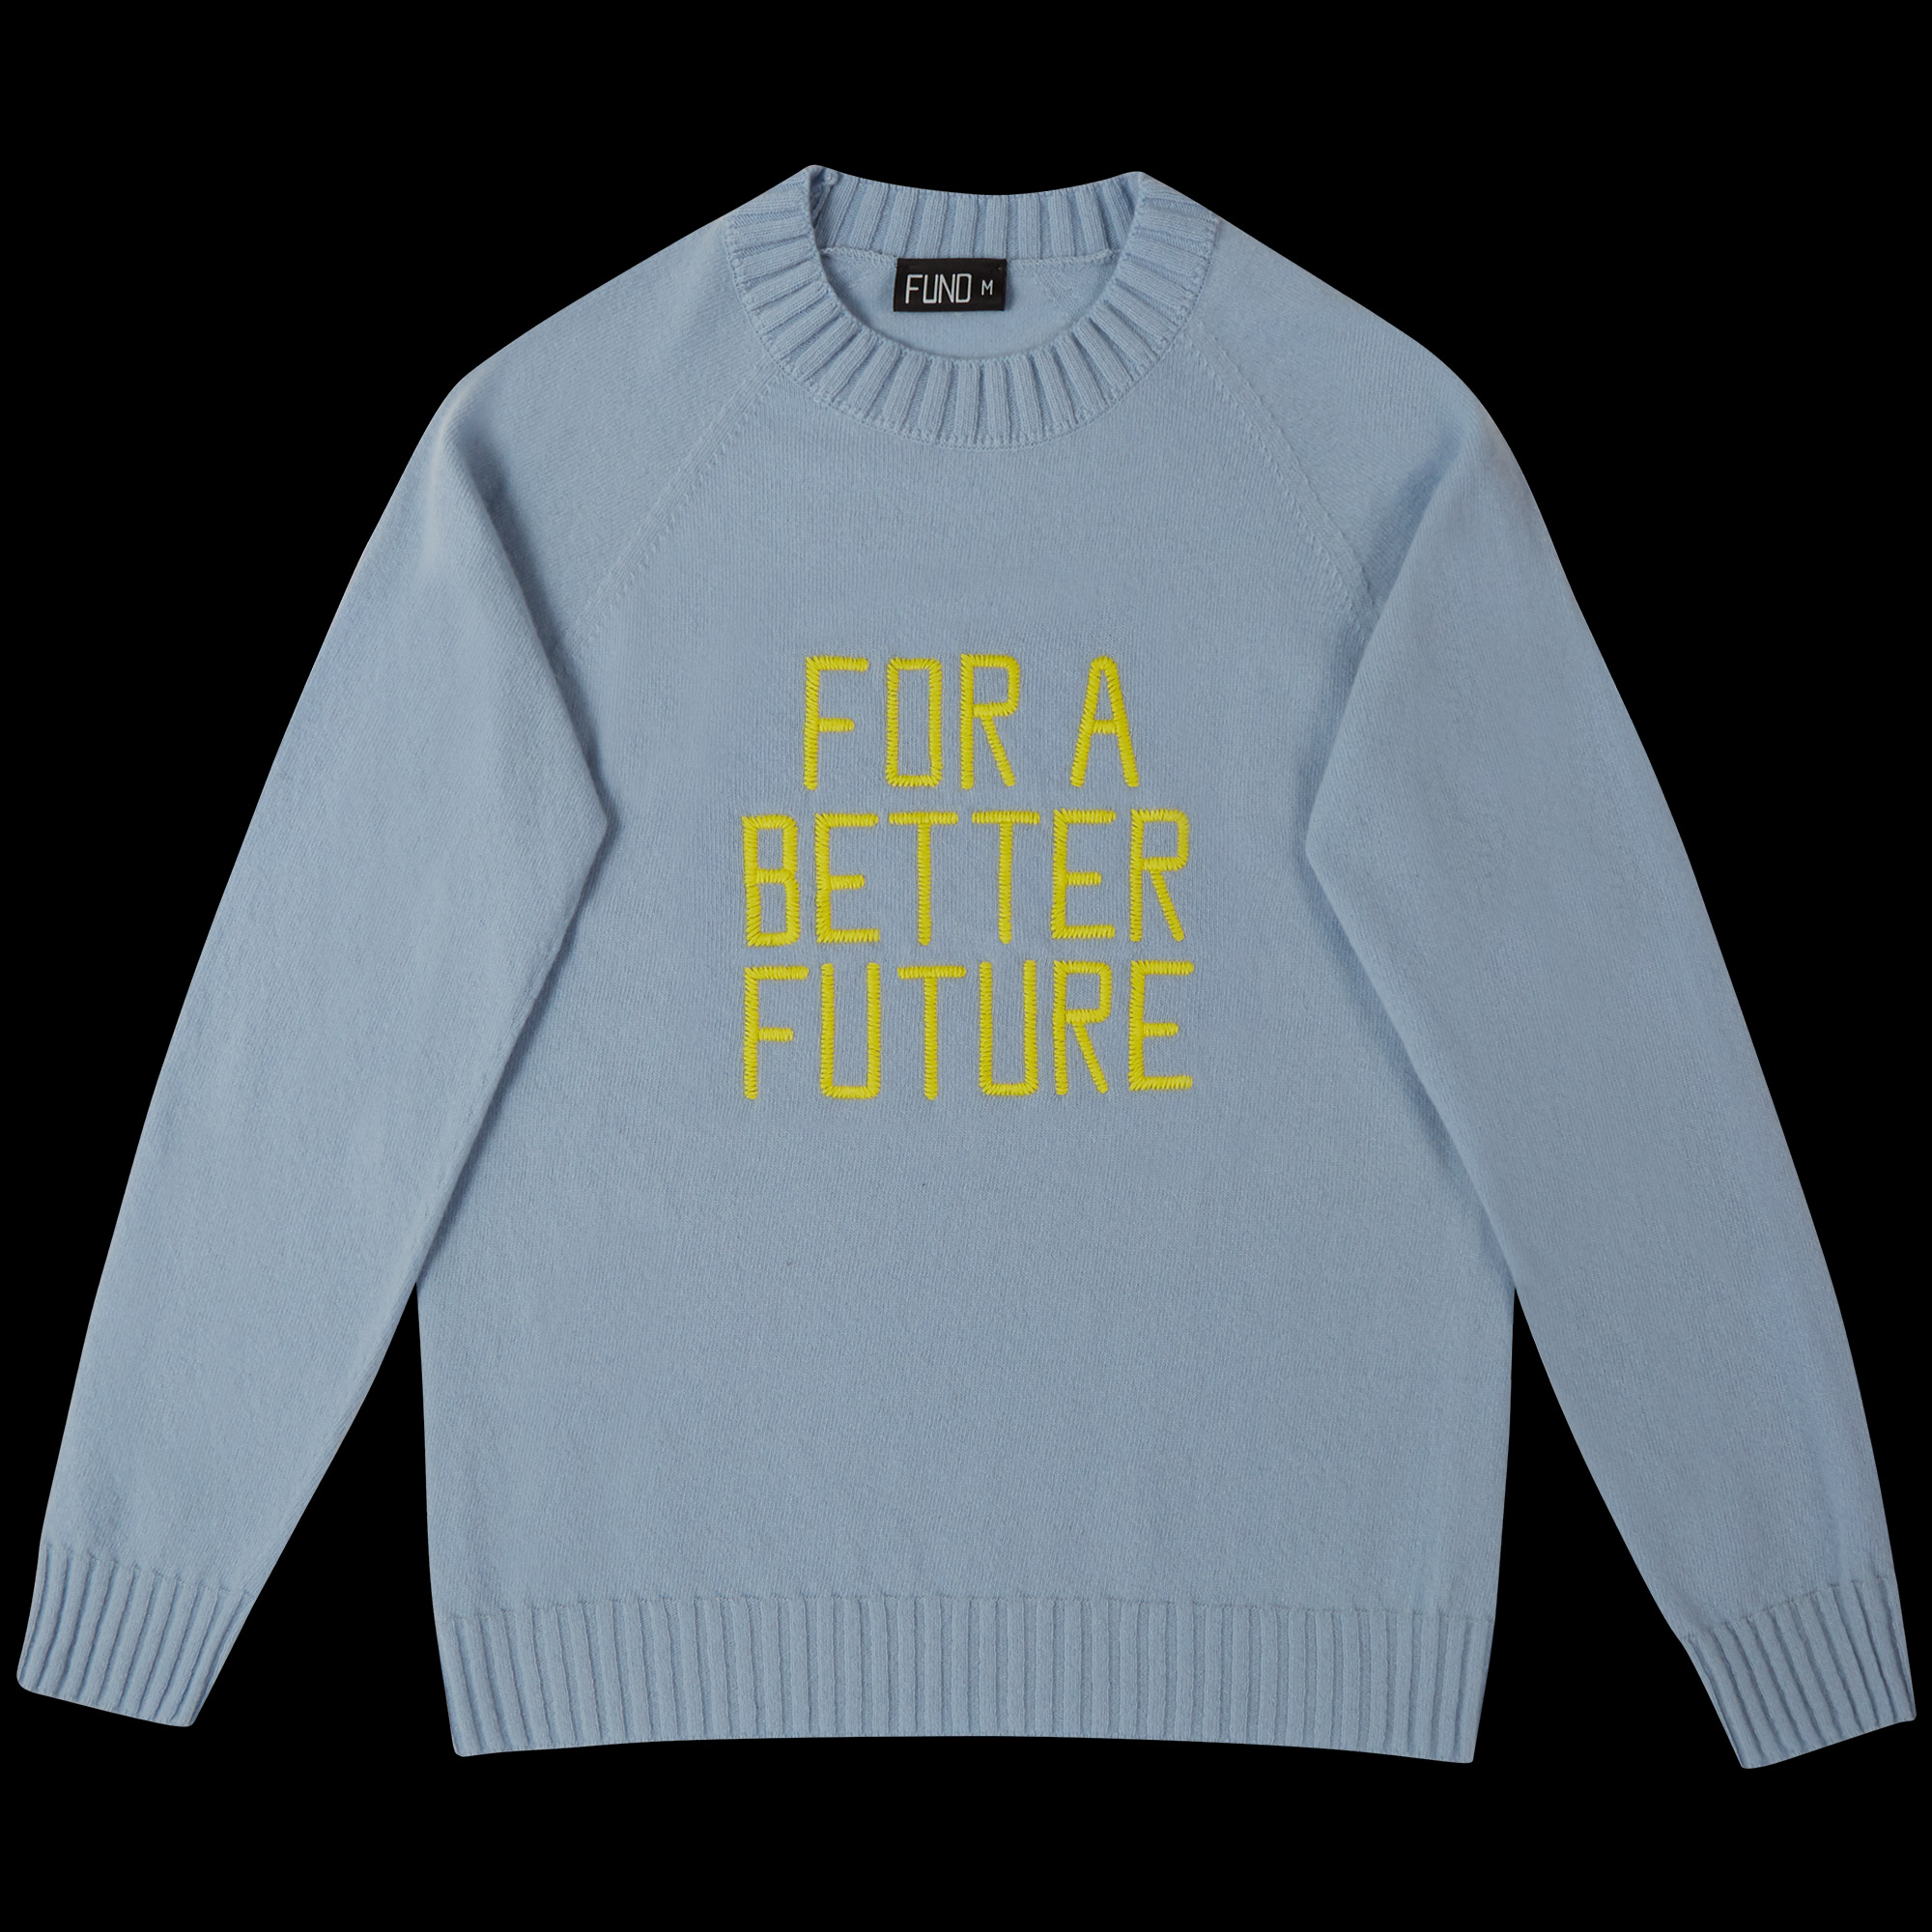 FUND Jumper £165.00